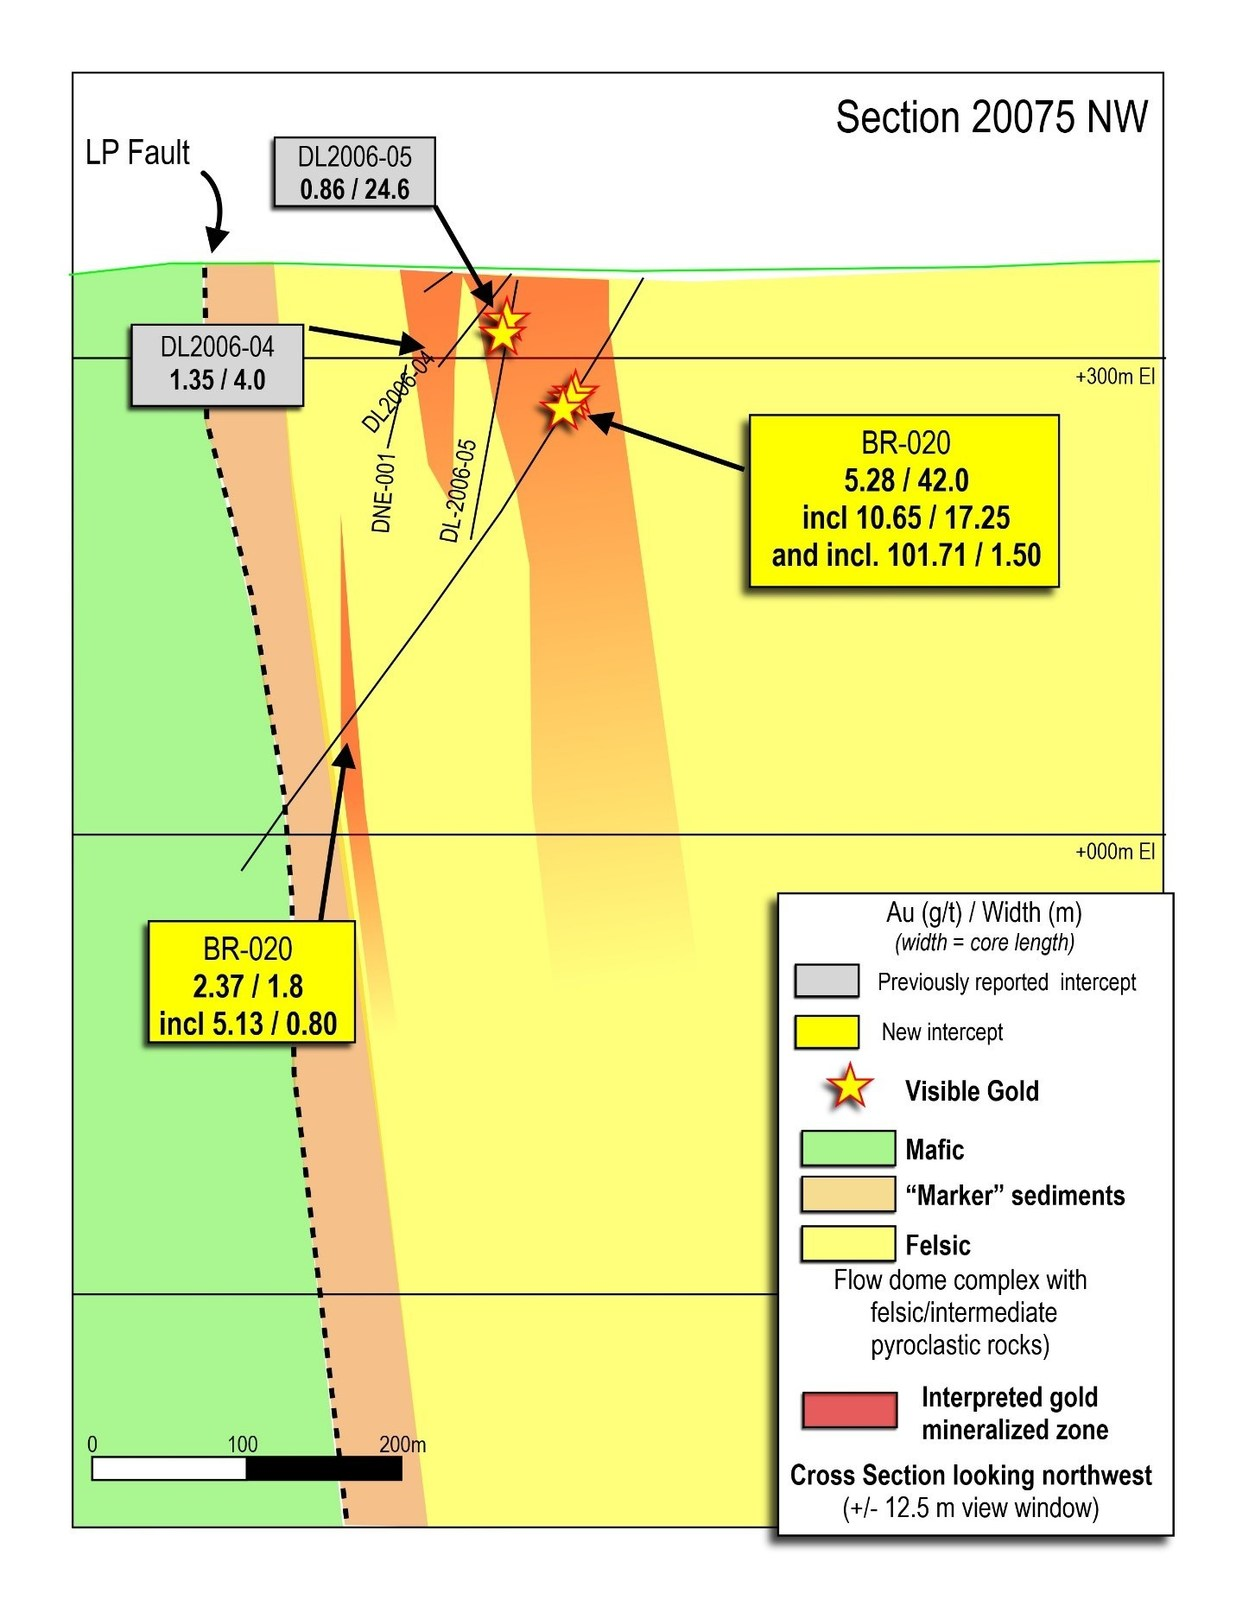 Figure 3: Cross section of the Auro Zone discovery, showing drill hole BR-020, and nearby historical drilling.